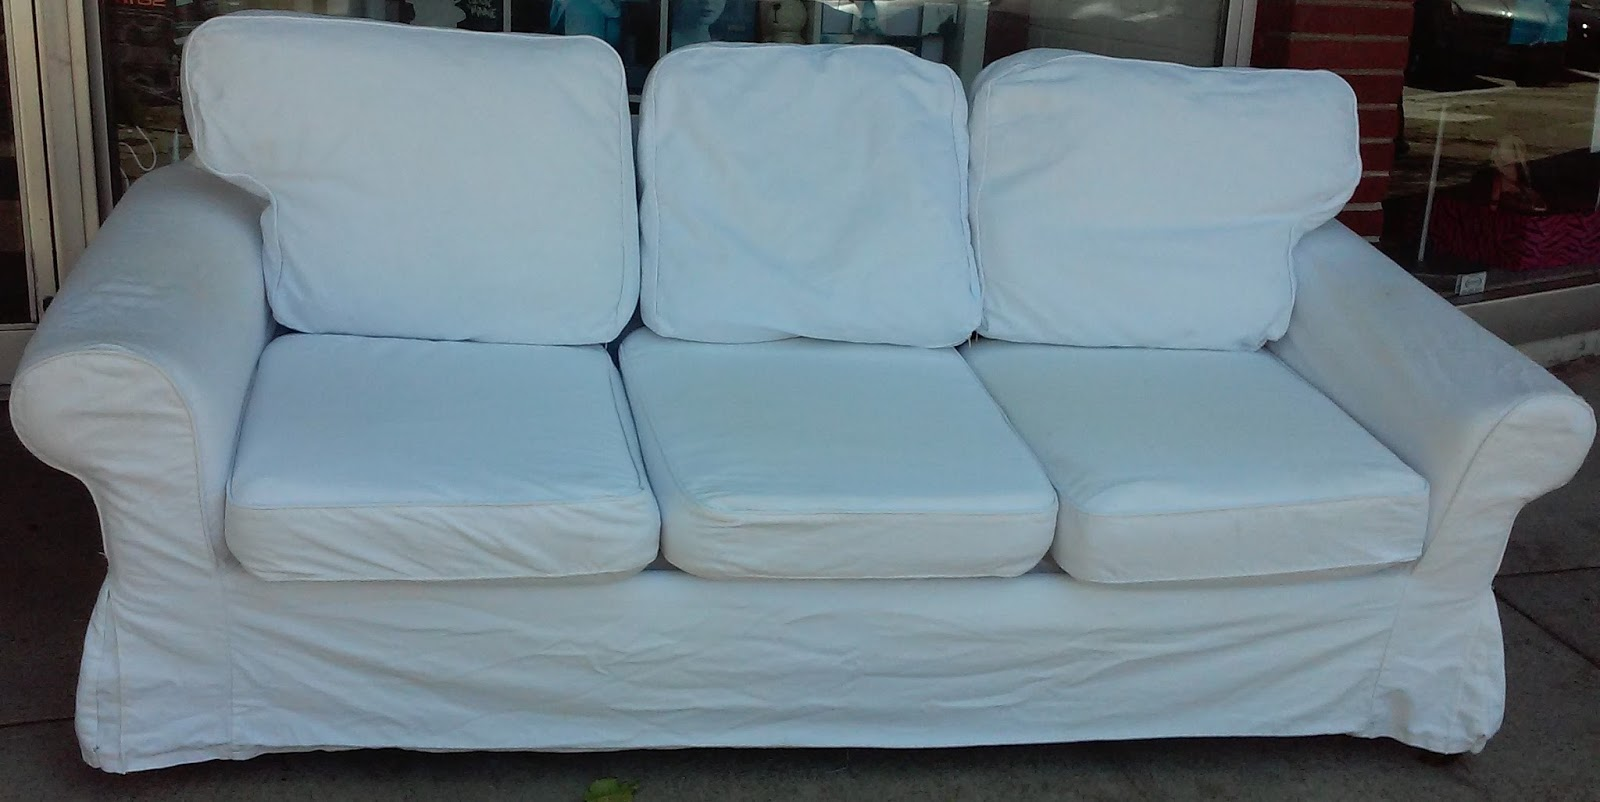 sofa feet covers surfers 2005 uhuru furniture and collectibles sold seven foot ikea slip